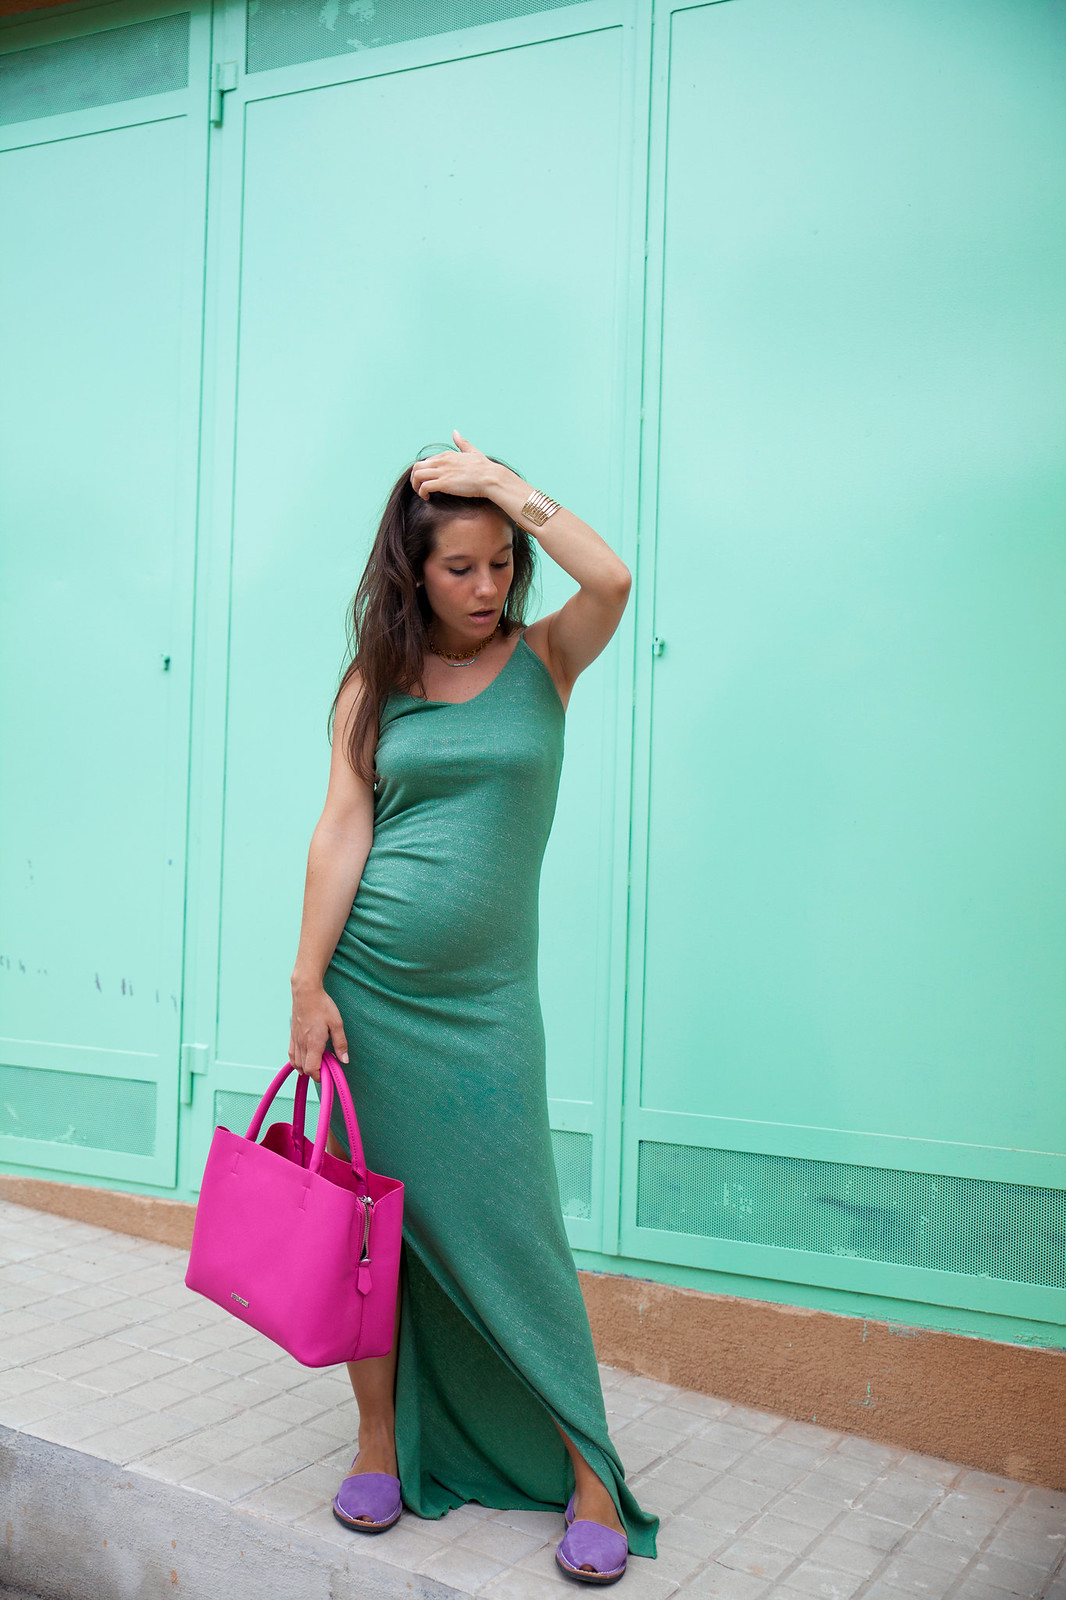 09_Vestido_turquesa_largo_outfit_embarazada_influencer_barcelona_theguestgirl_long_dress_mint